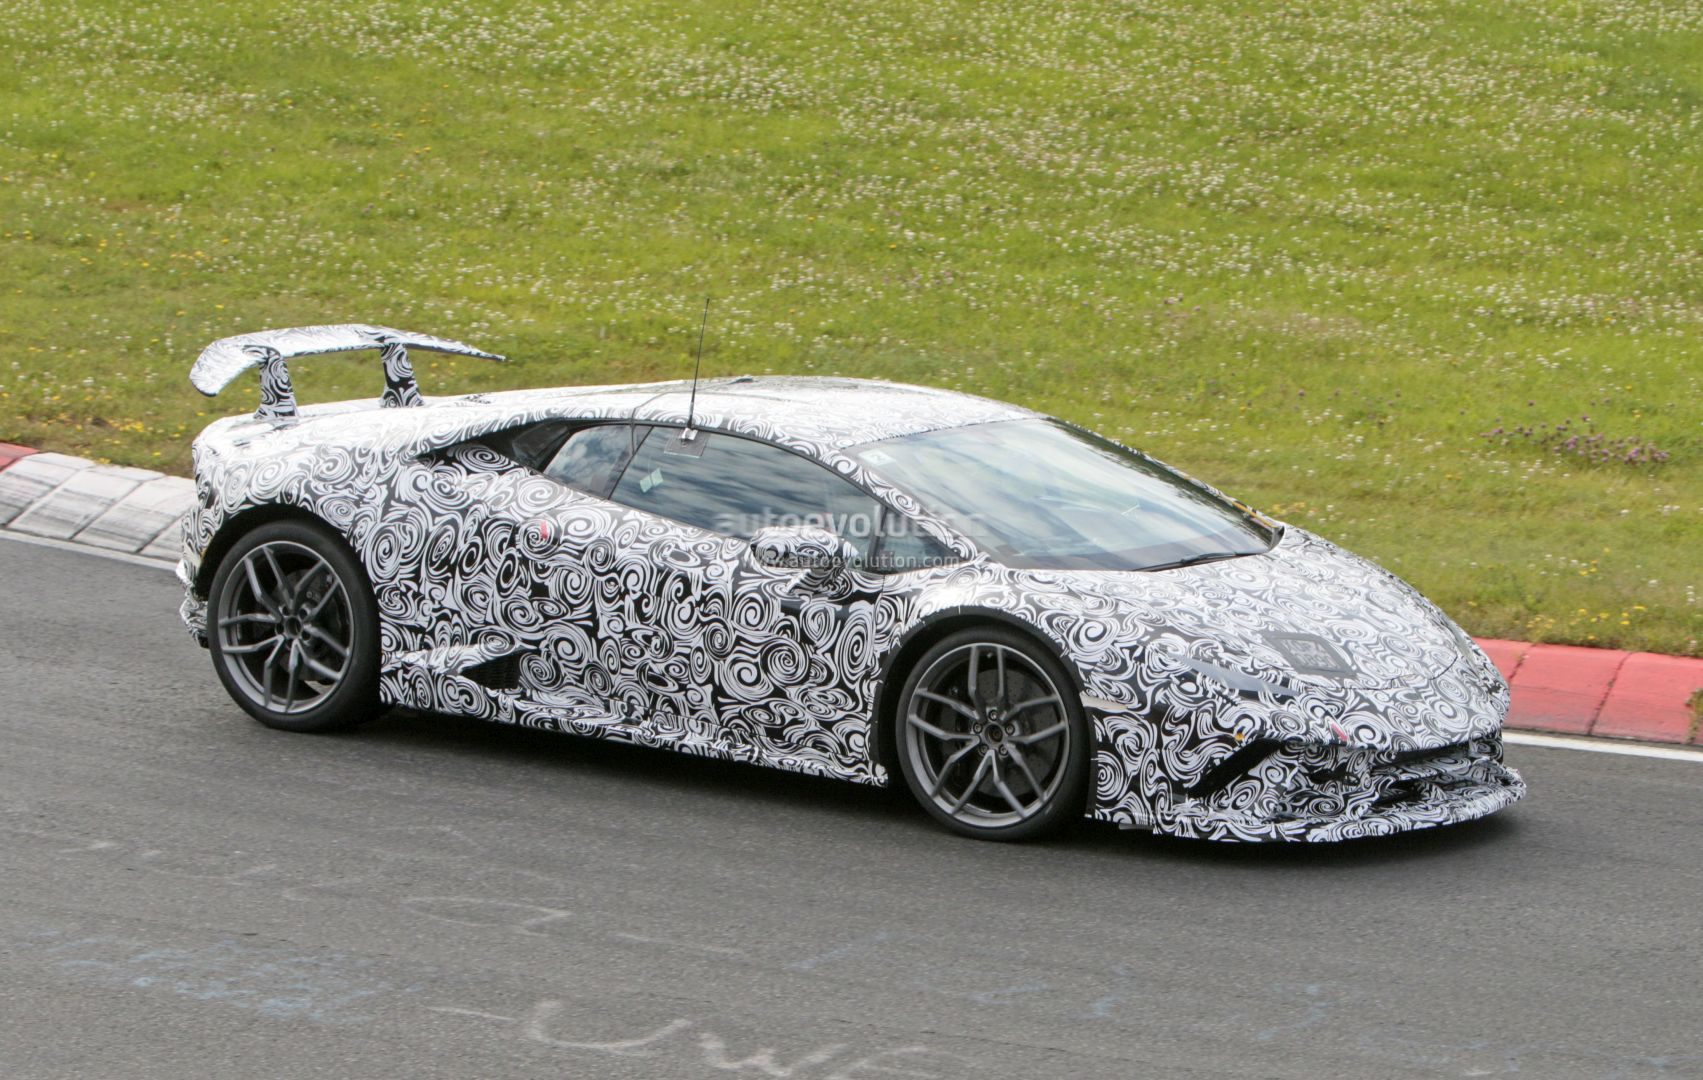 Lamborghini Huracan Superleggera Sounds Insane In Video Debut Autoevolution